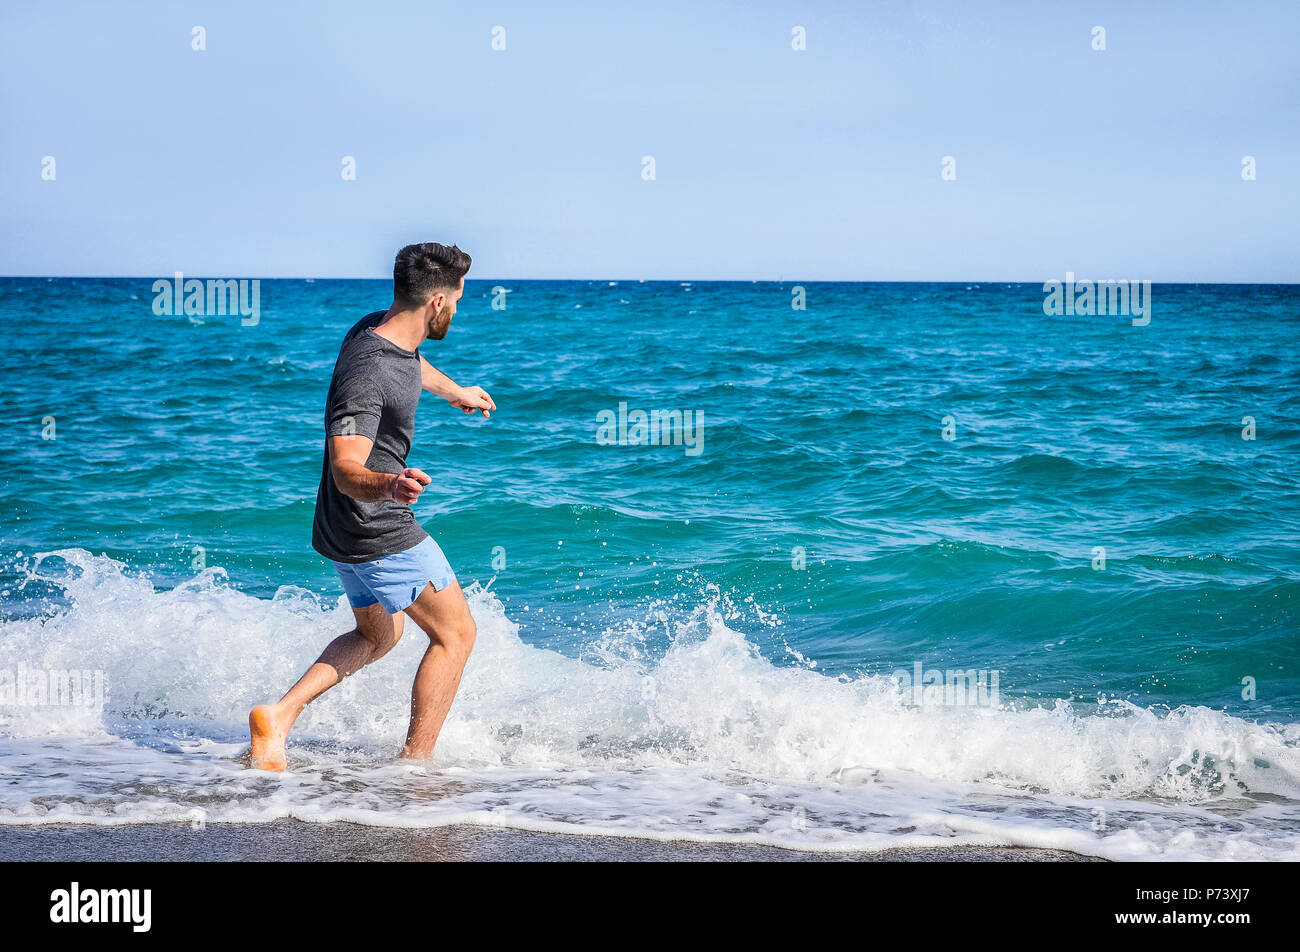 Young Man on Beach Skipping Stones on Sea - Stock Image